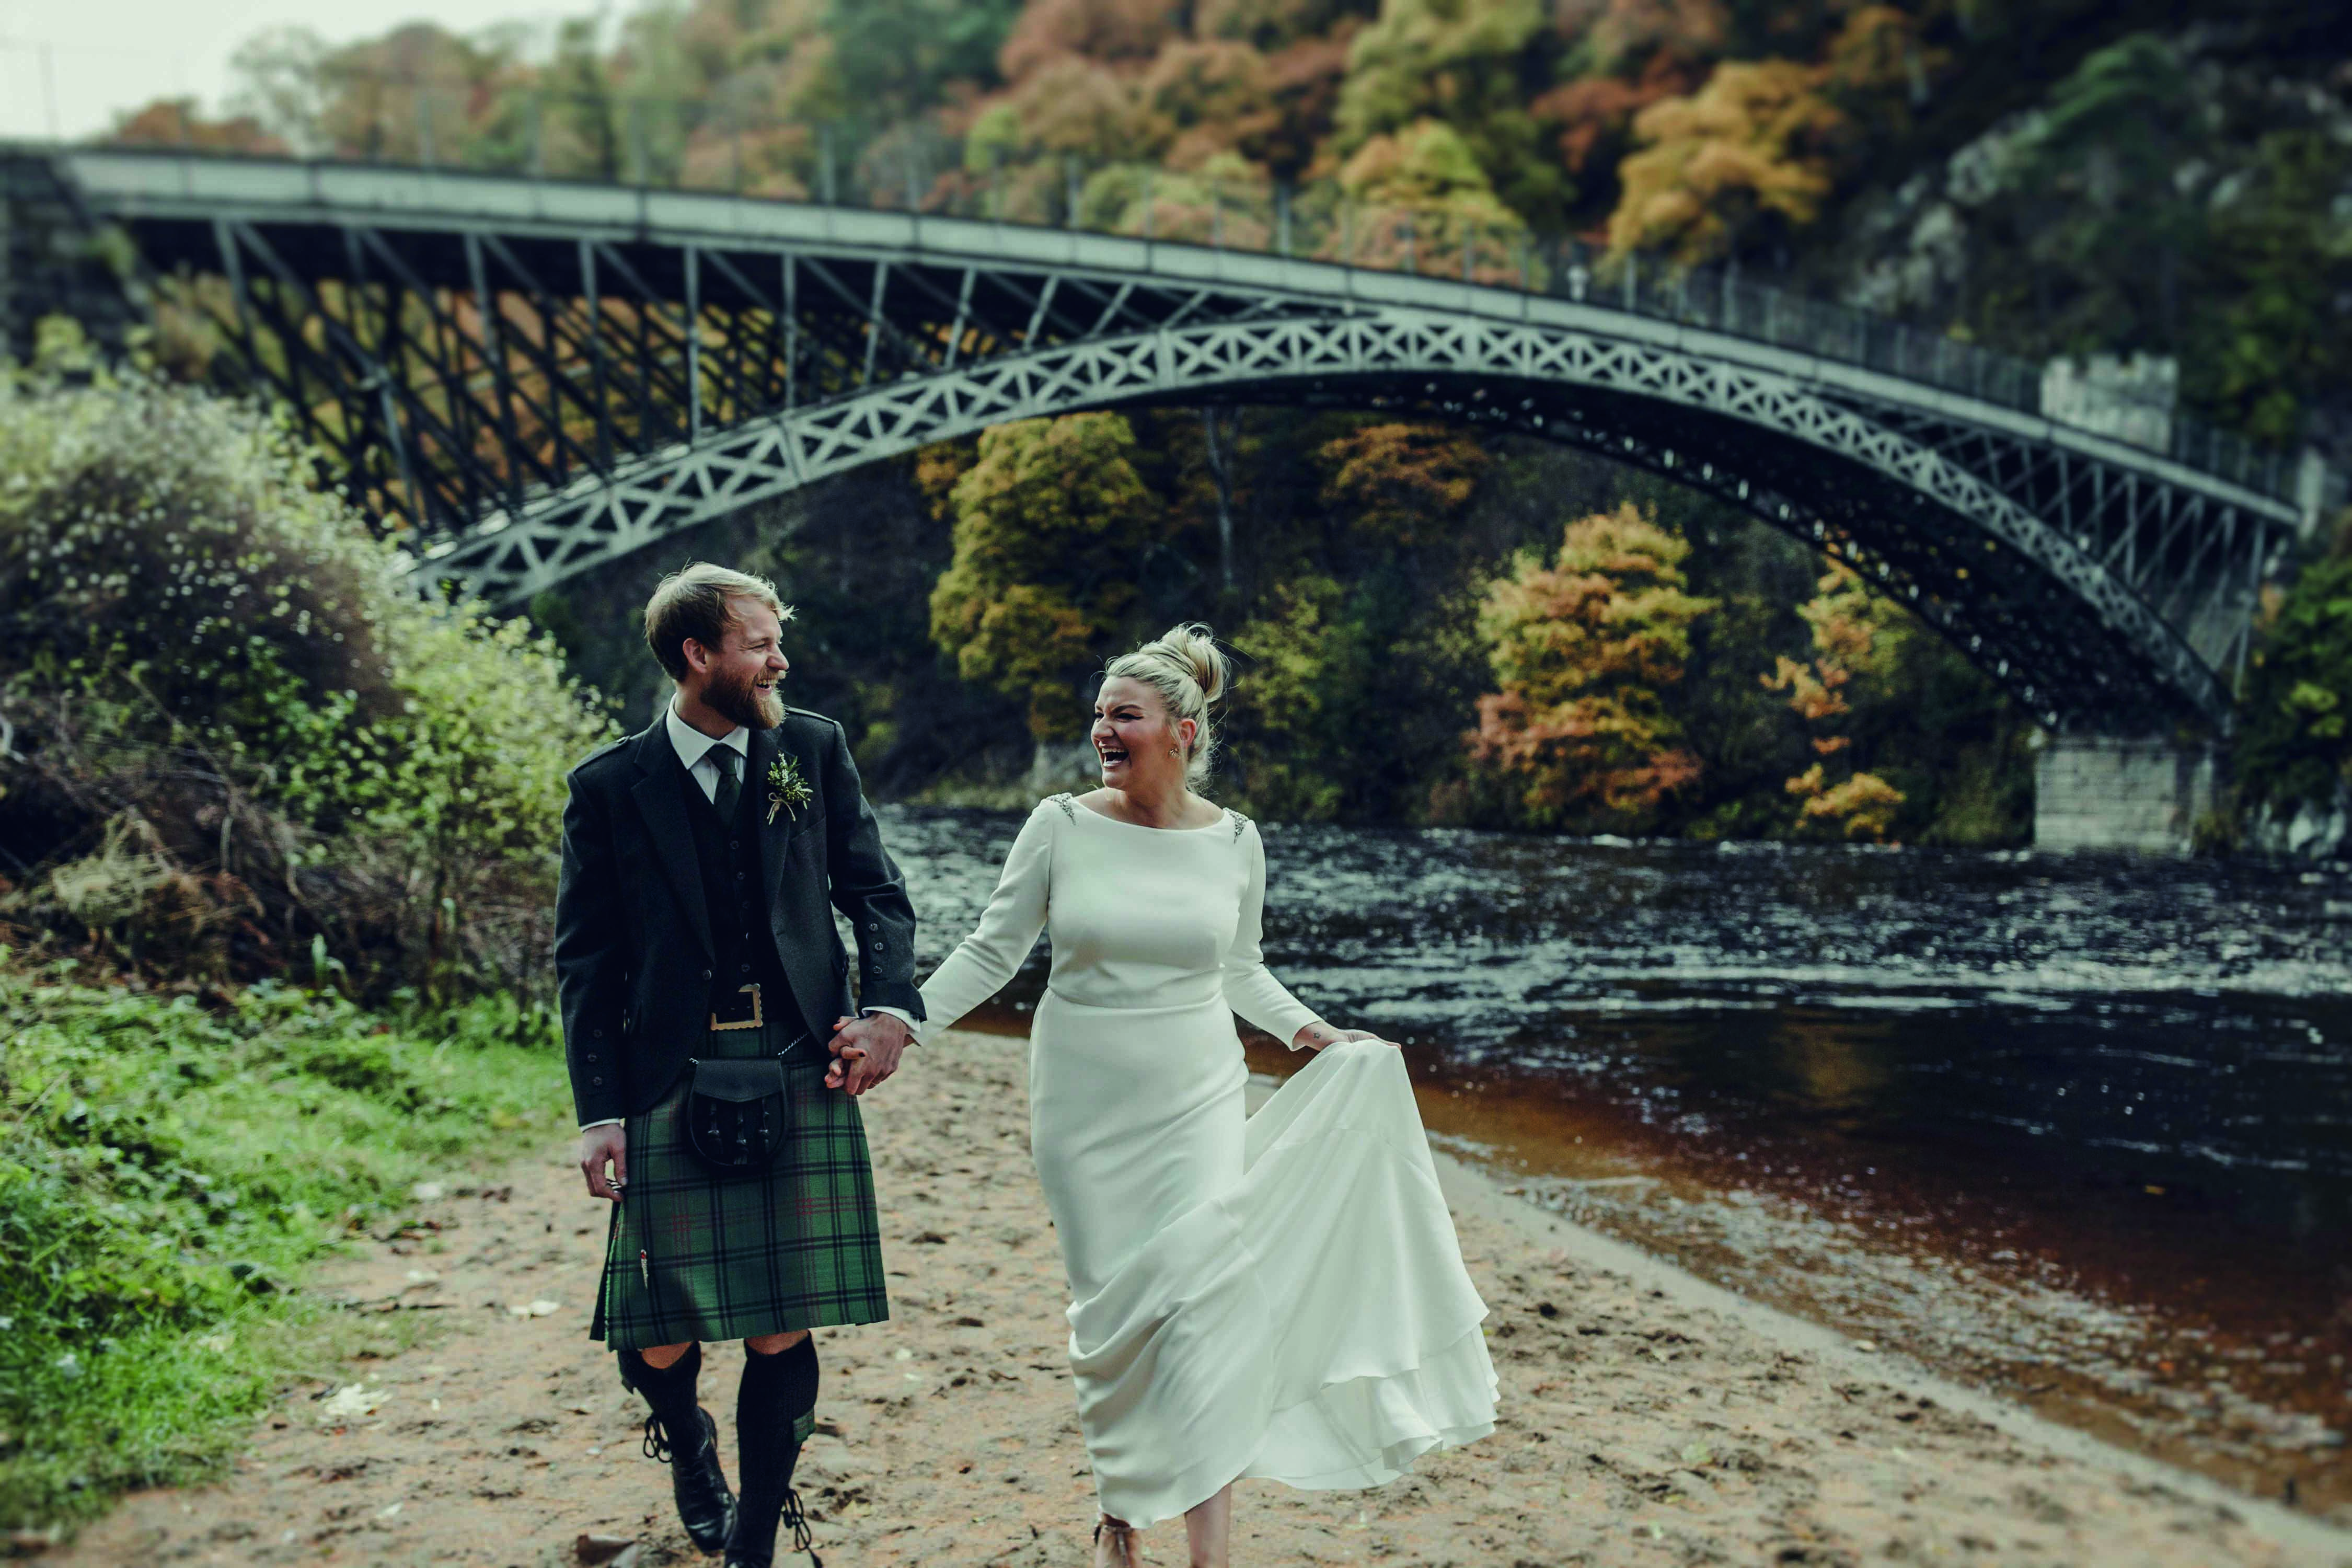 Win a wedding at the craigellachie worth 7000 scottish its just a fact the craigellachie is one of scotlands coolest wedding venues built in 1893 in the scenic spot where the rivers spey and fiddich meet junglespirit Image collections